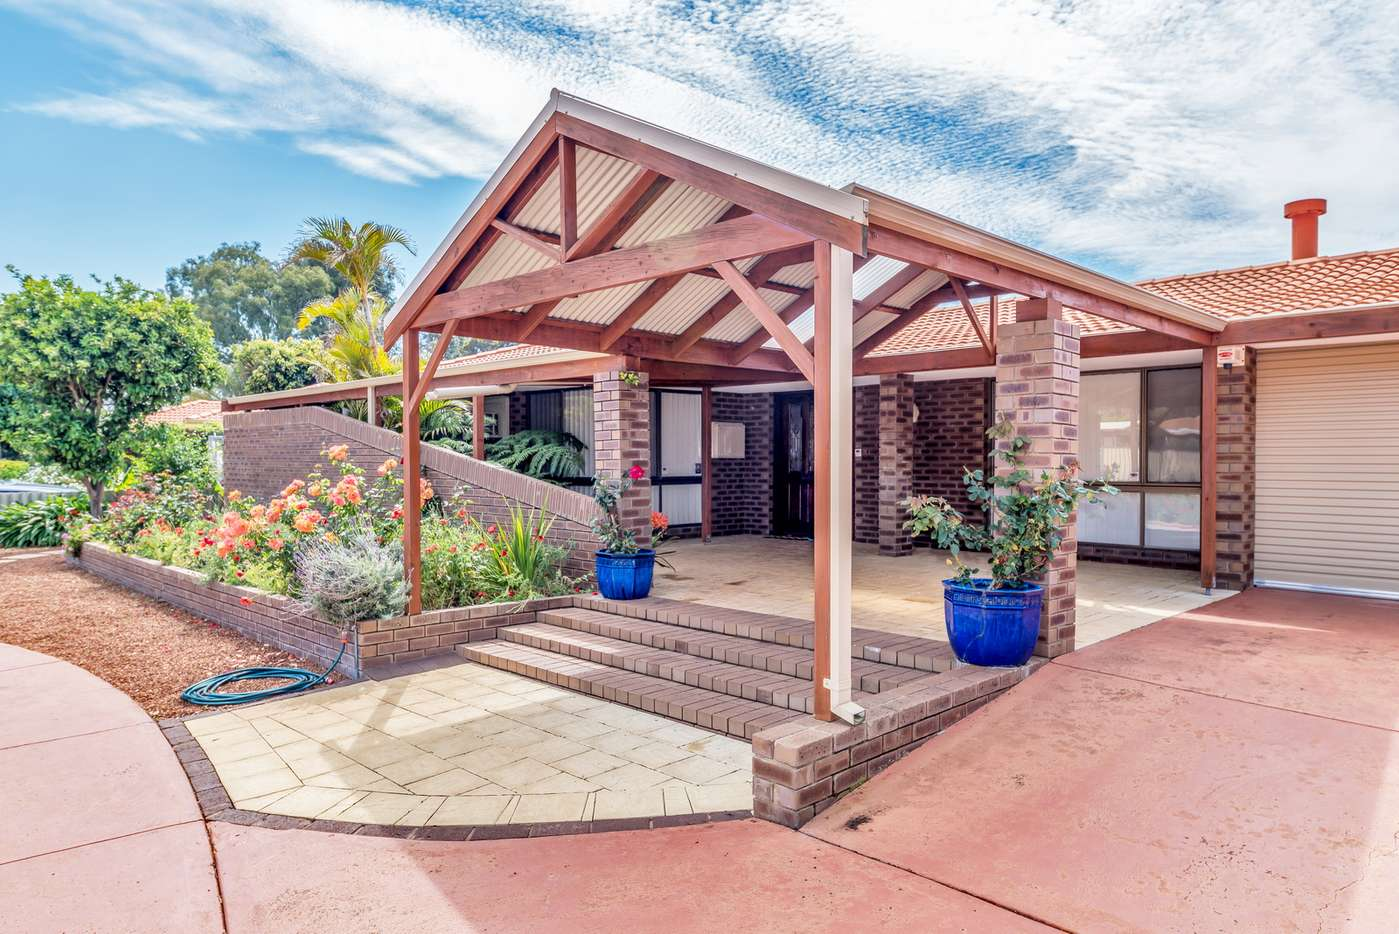 Main view of Homely house listing, 18 Arundel Drive, Halls Head, WA 6210